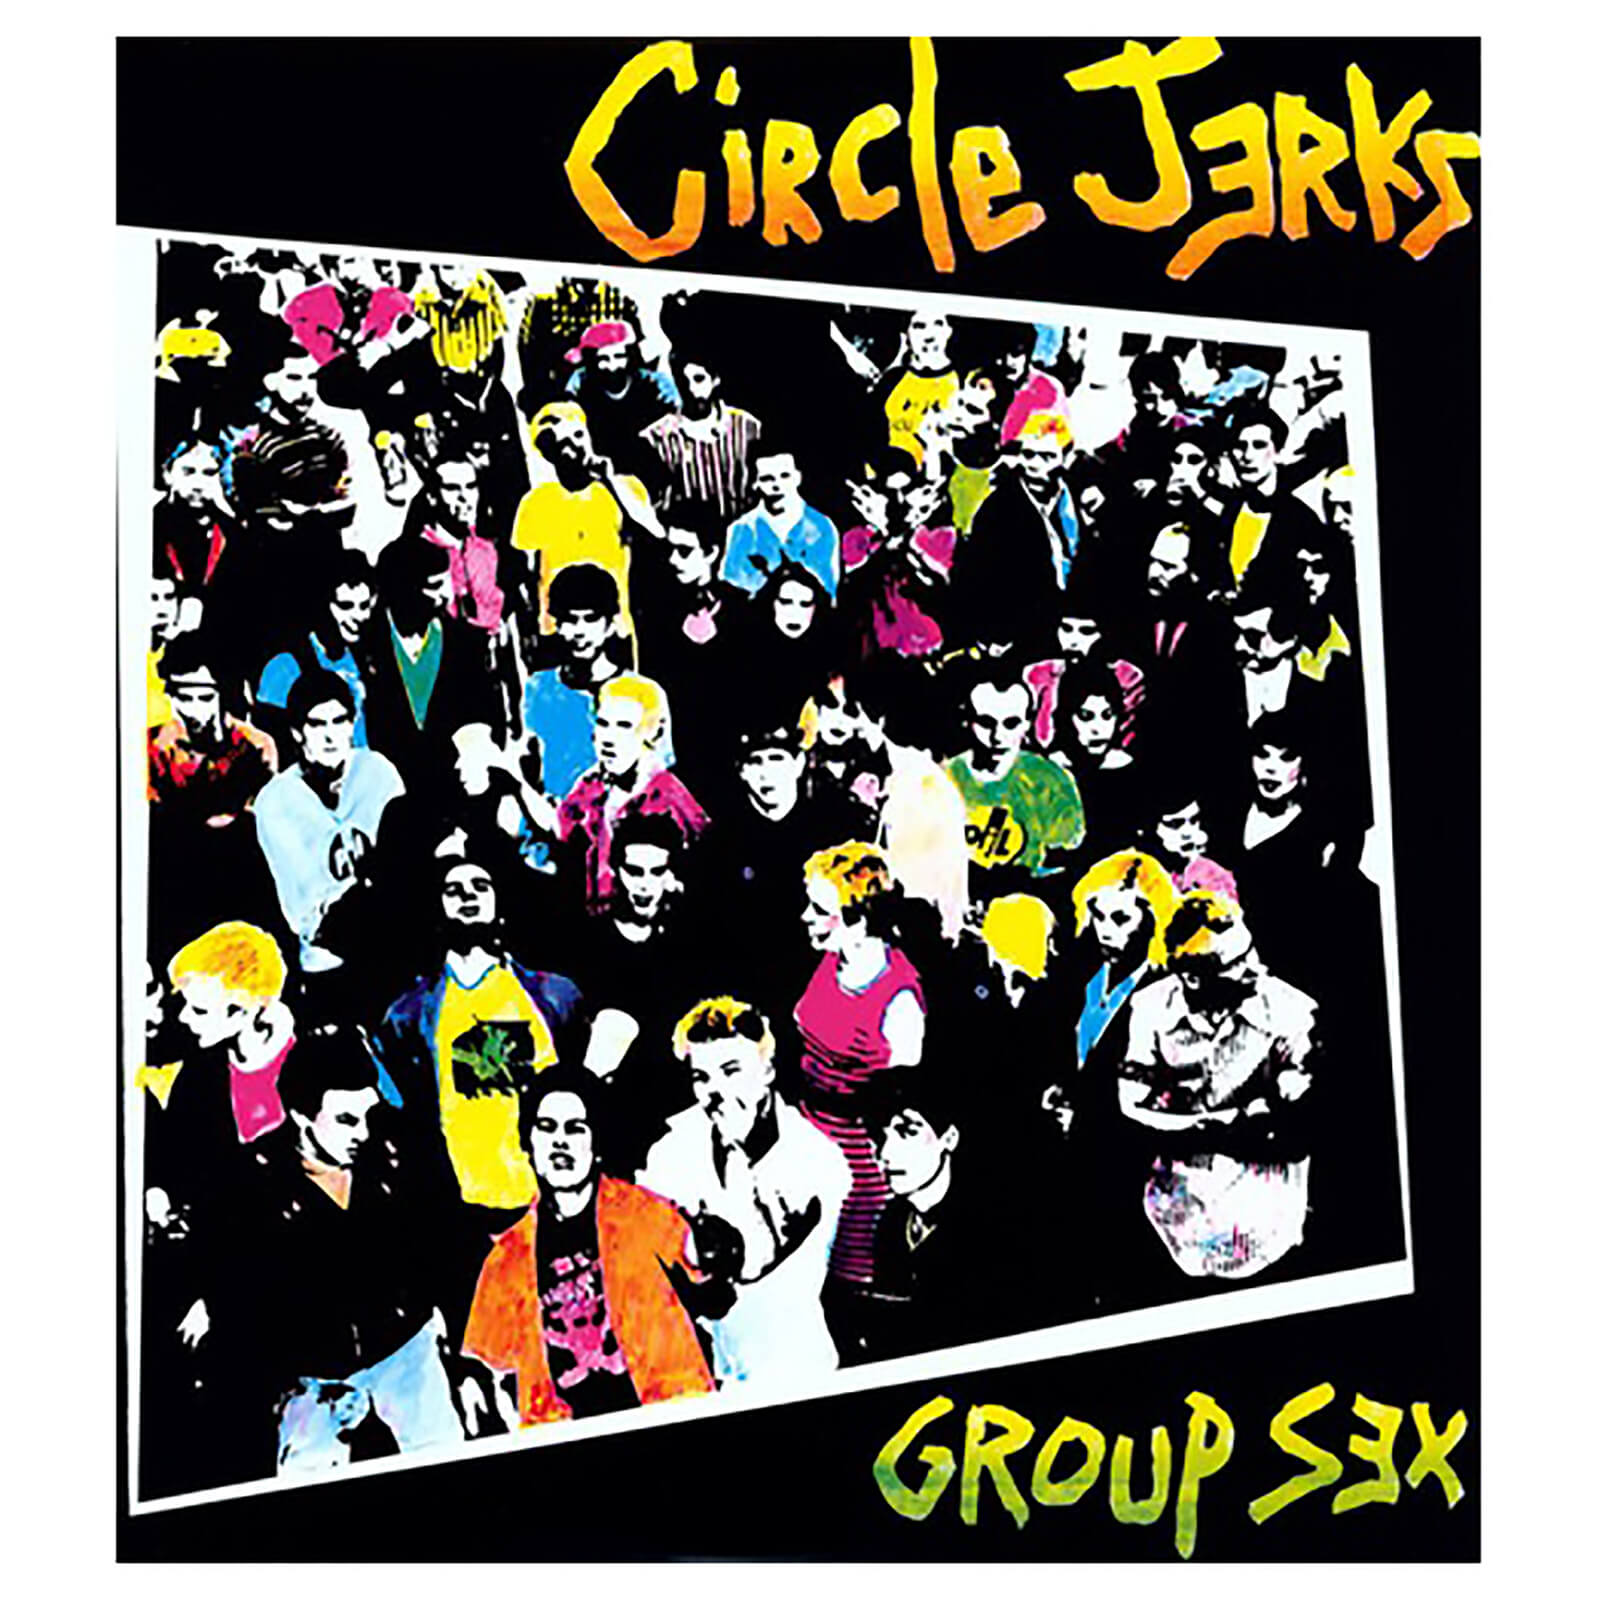 Circle Jerks - Group Sex - Vinyl